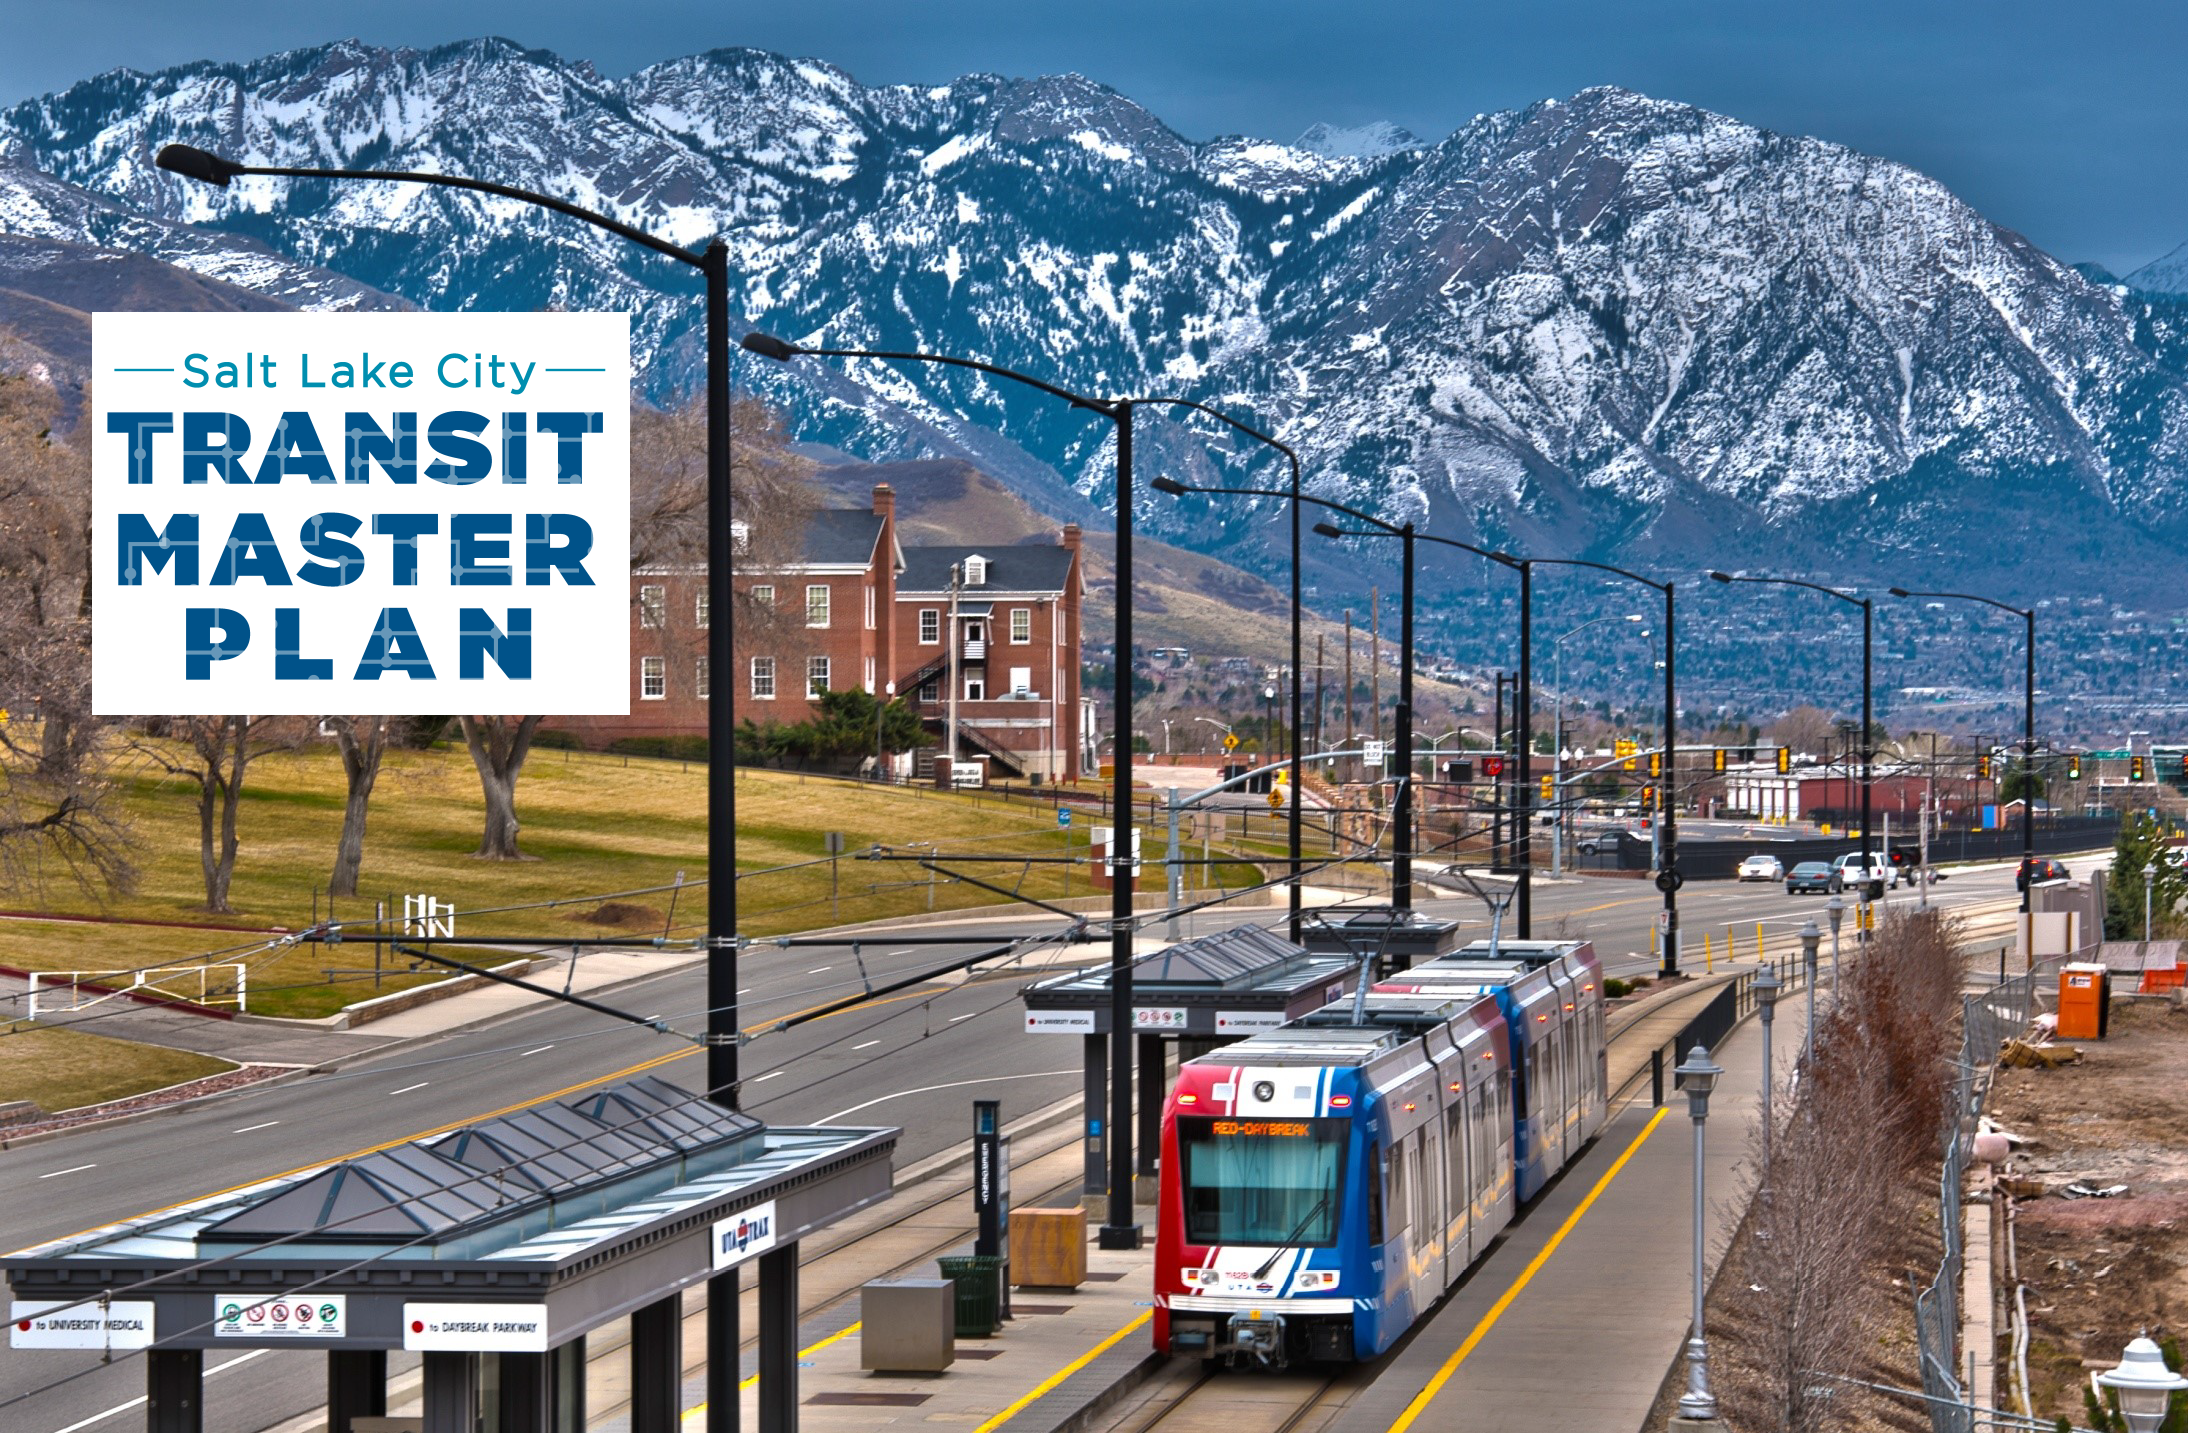 Cover photo of Salt Lake City's Transit Master Plan, featuring a Trax station in front of the mountains